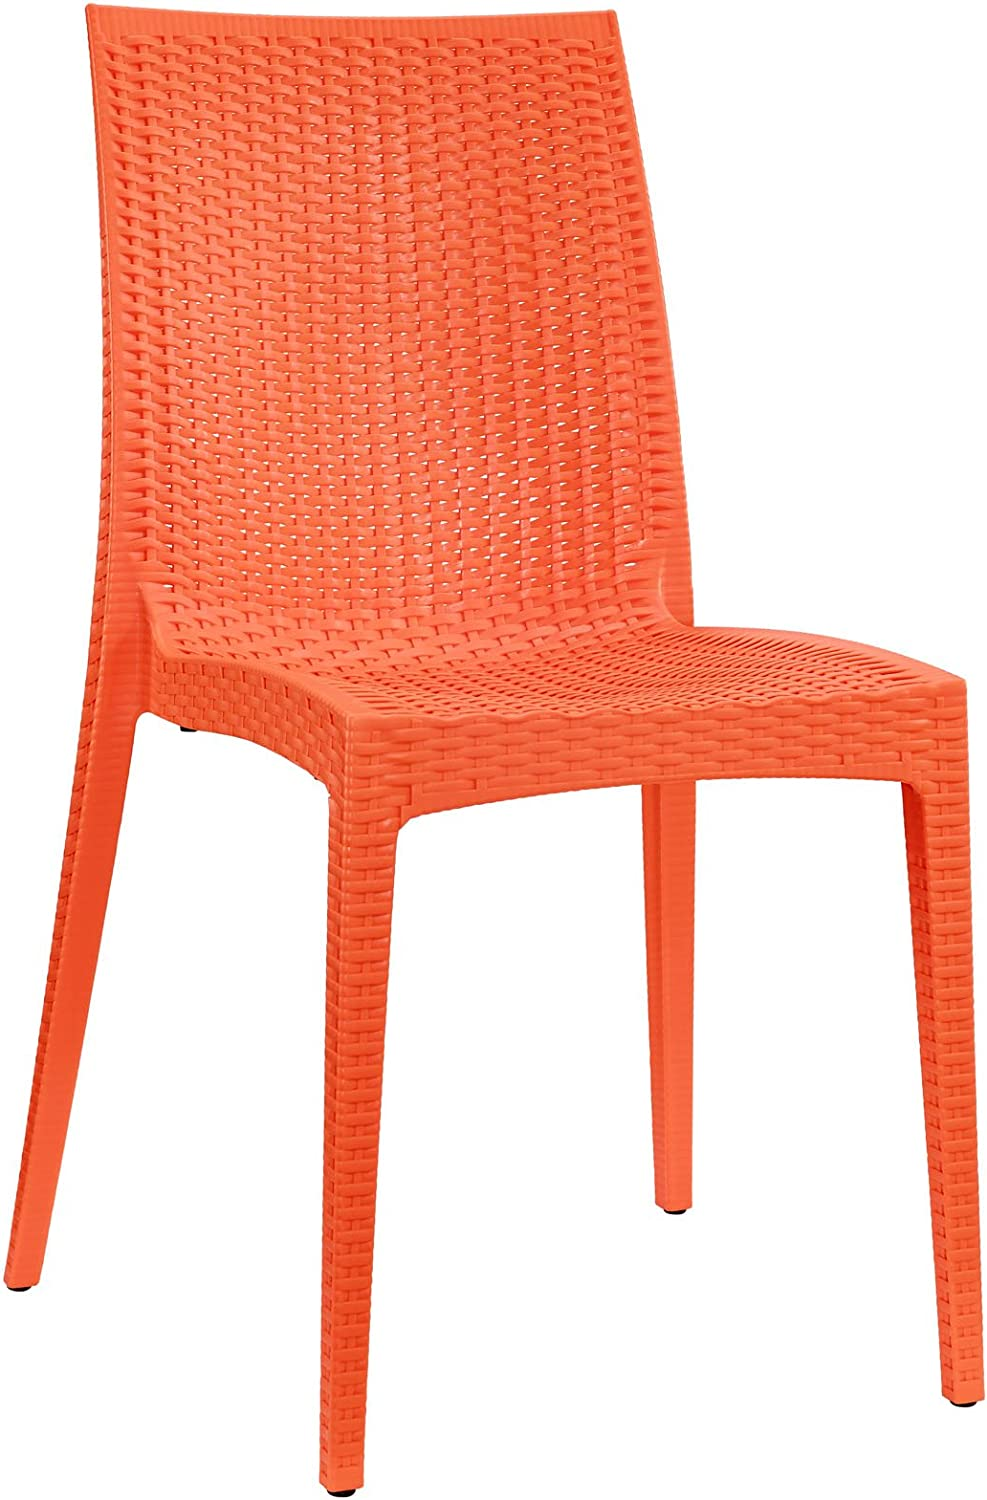 Modway Modway Intrepid Dining Chair, orange